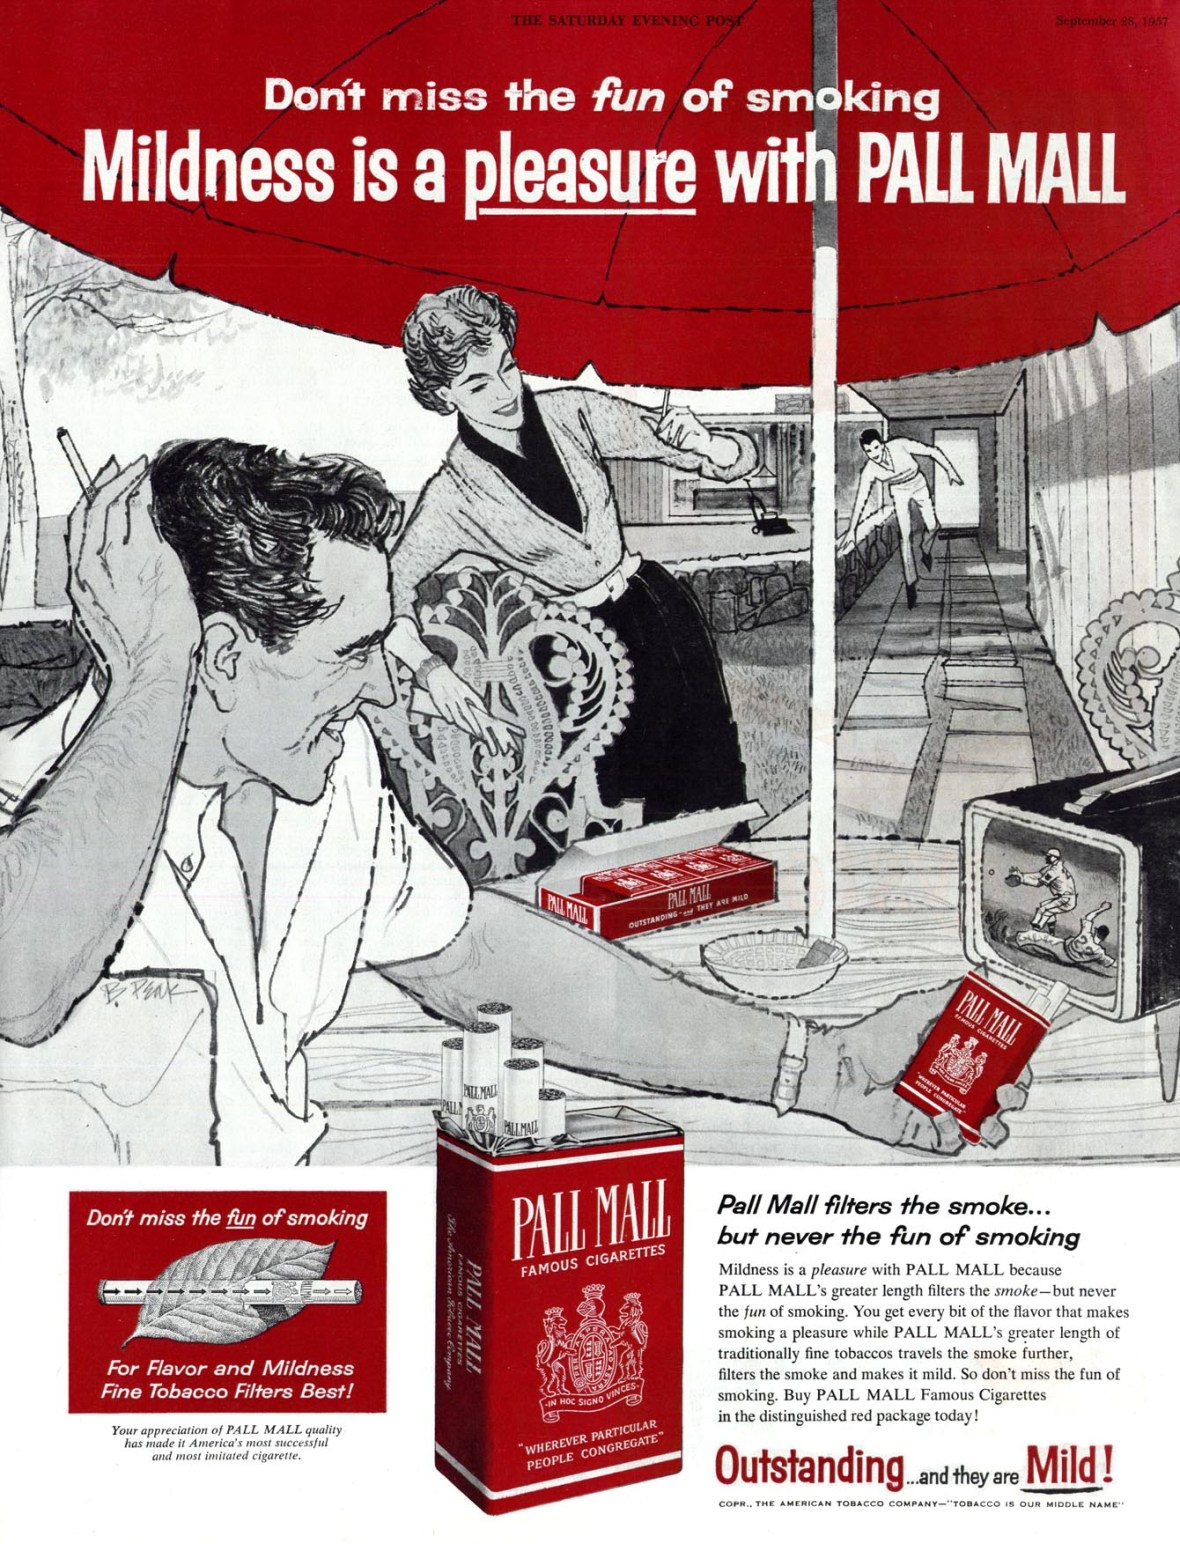 Pall Mall - published in The Saturday Evening Post - September 28, 1957